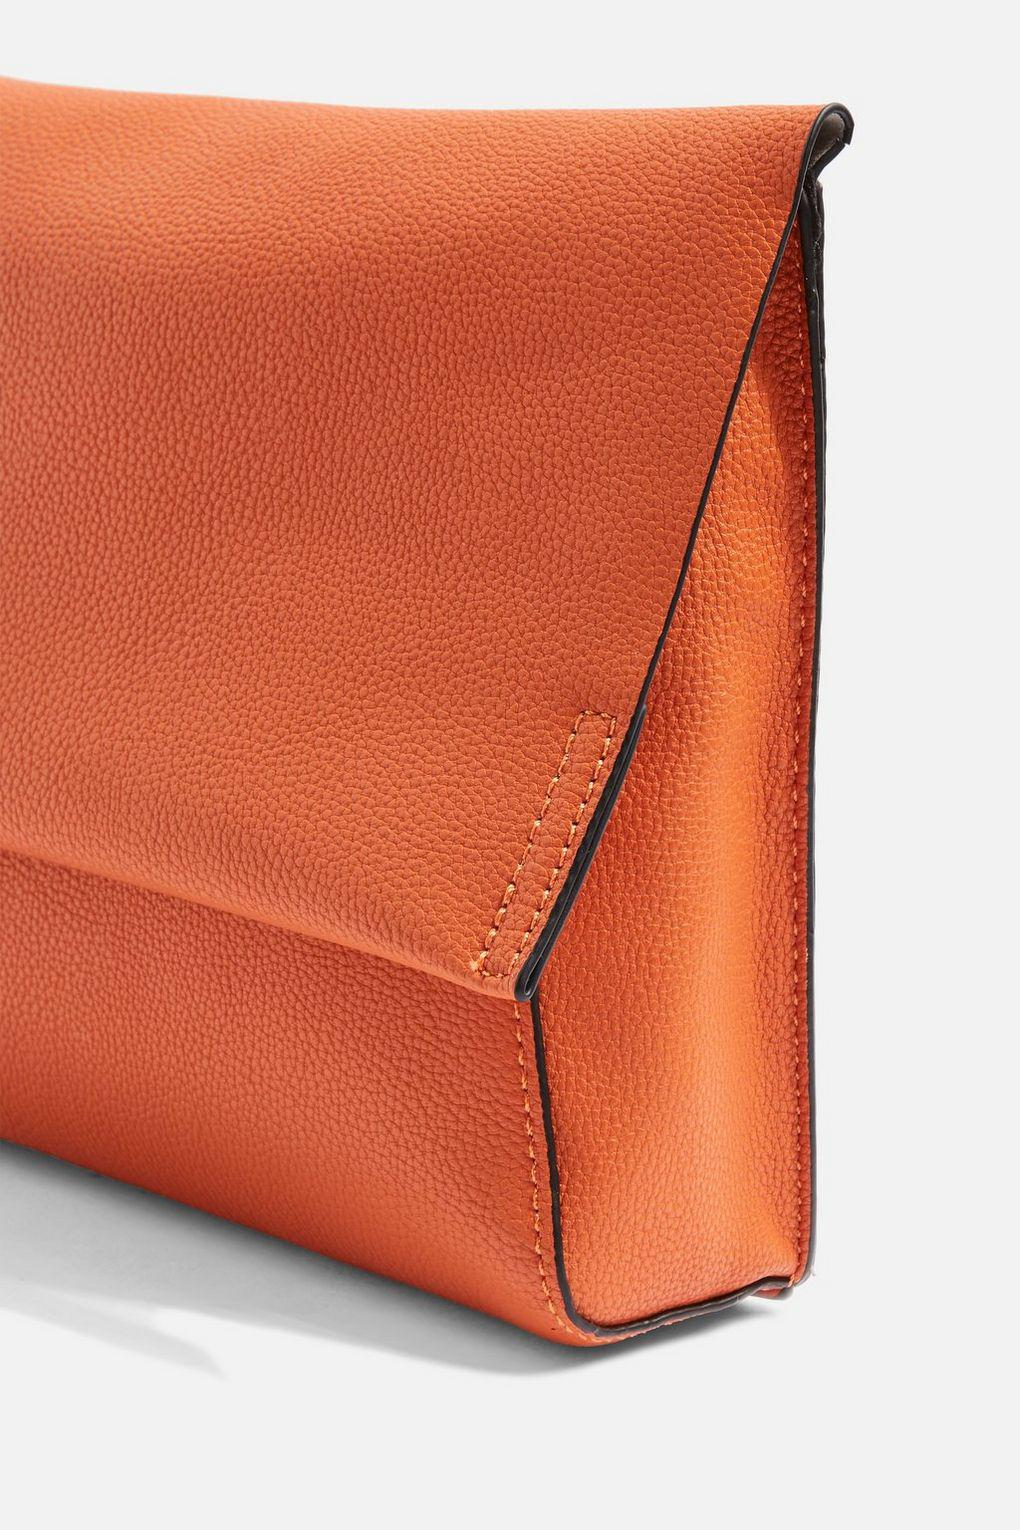 2d39a426d61 Topshop New Charlie Clutch in Orange - Lyst